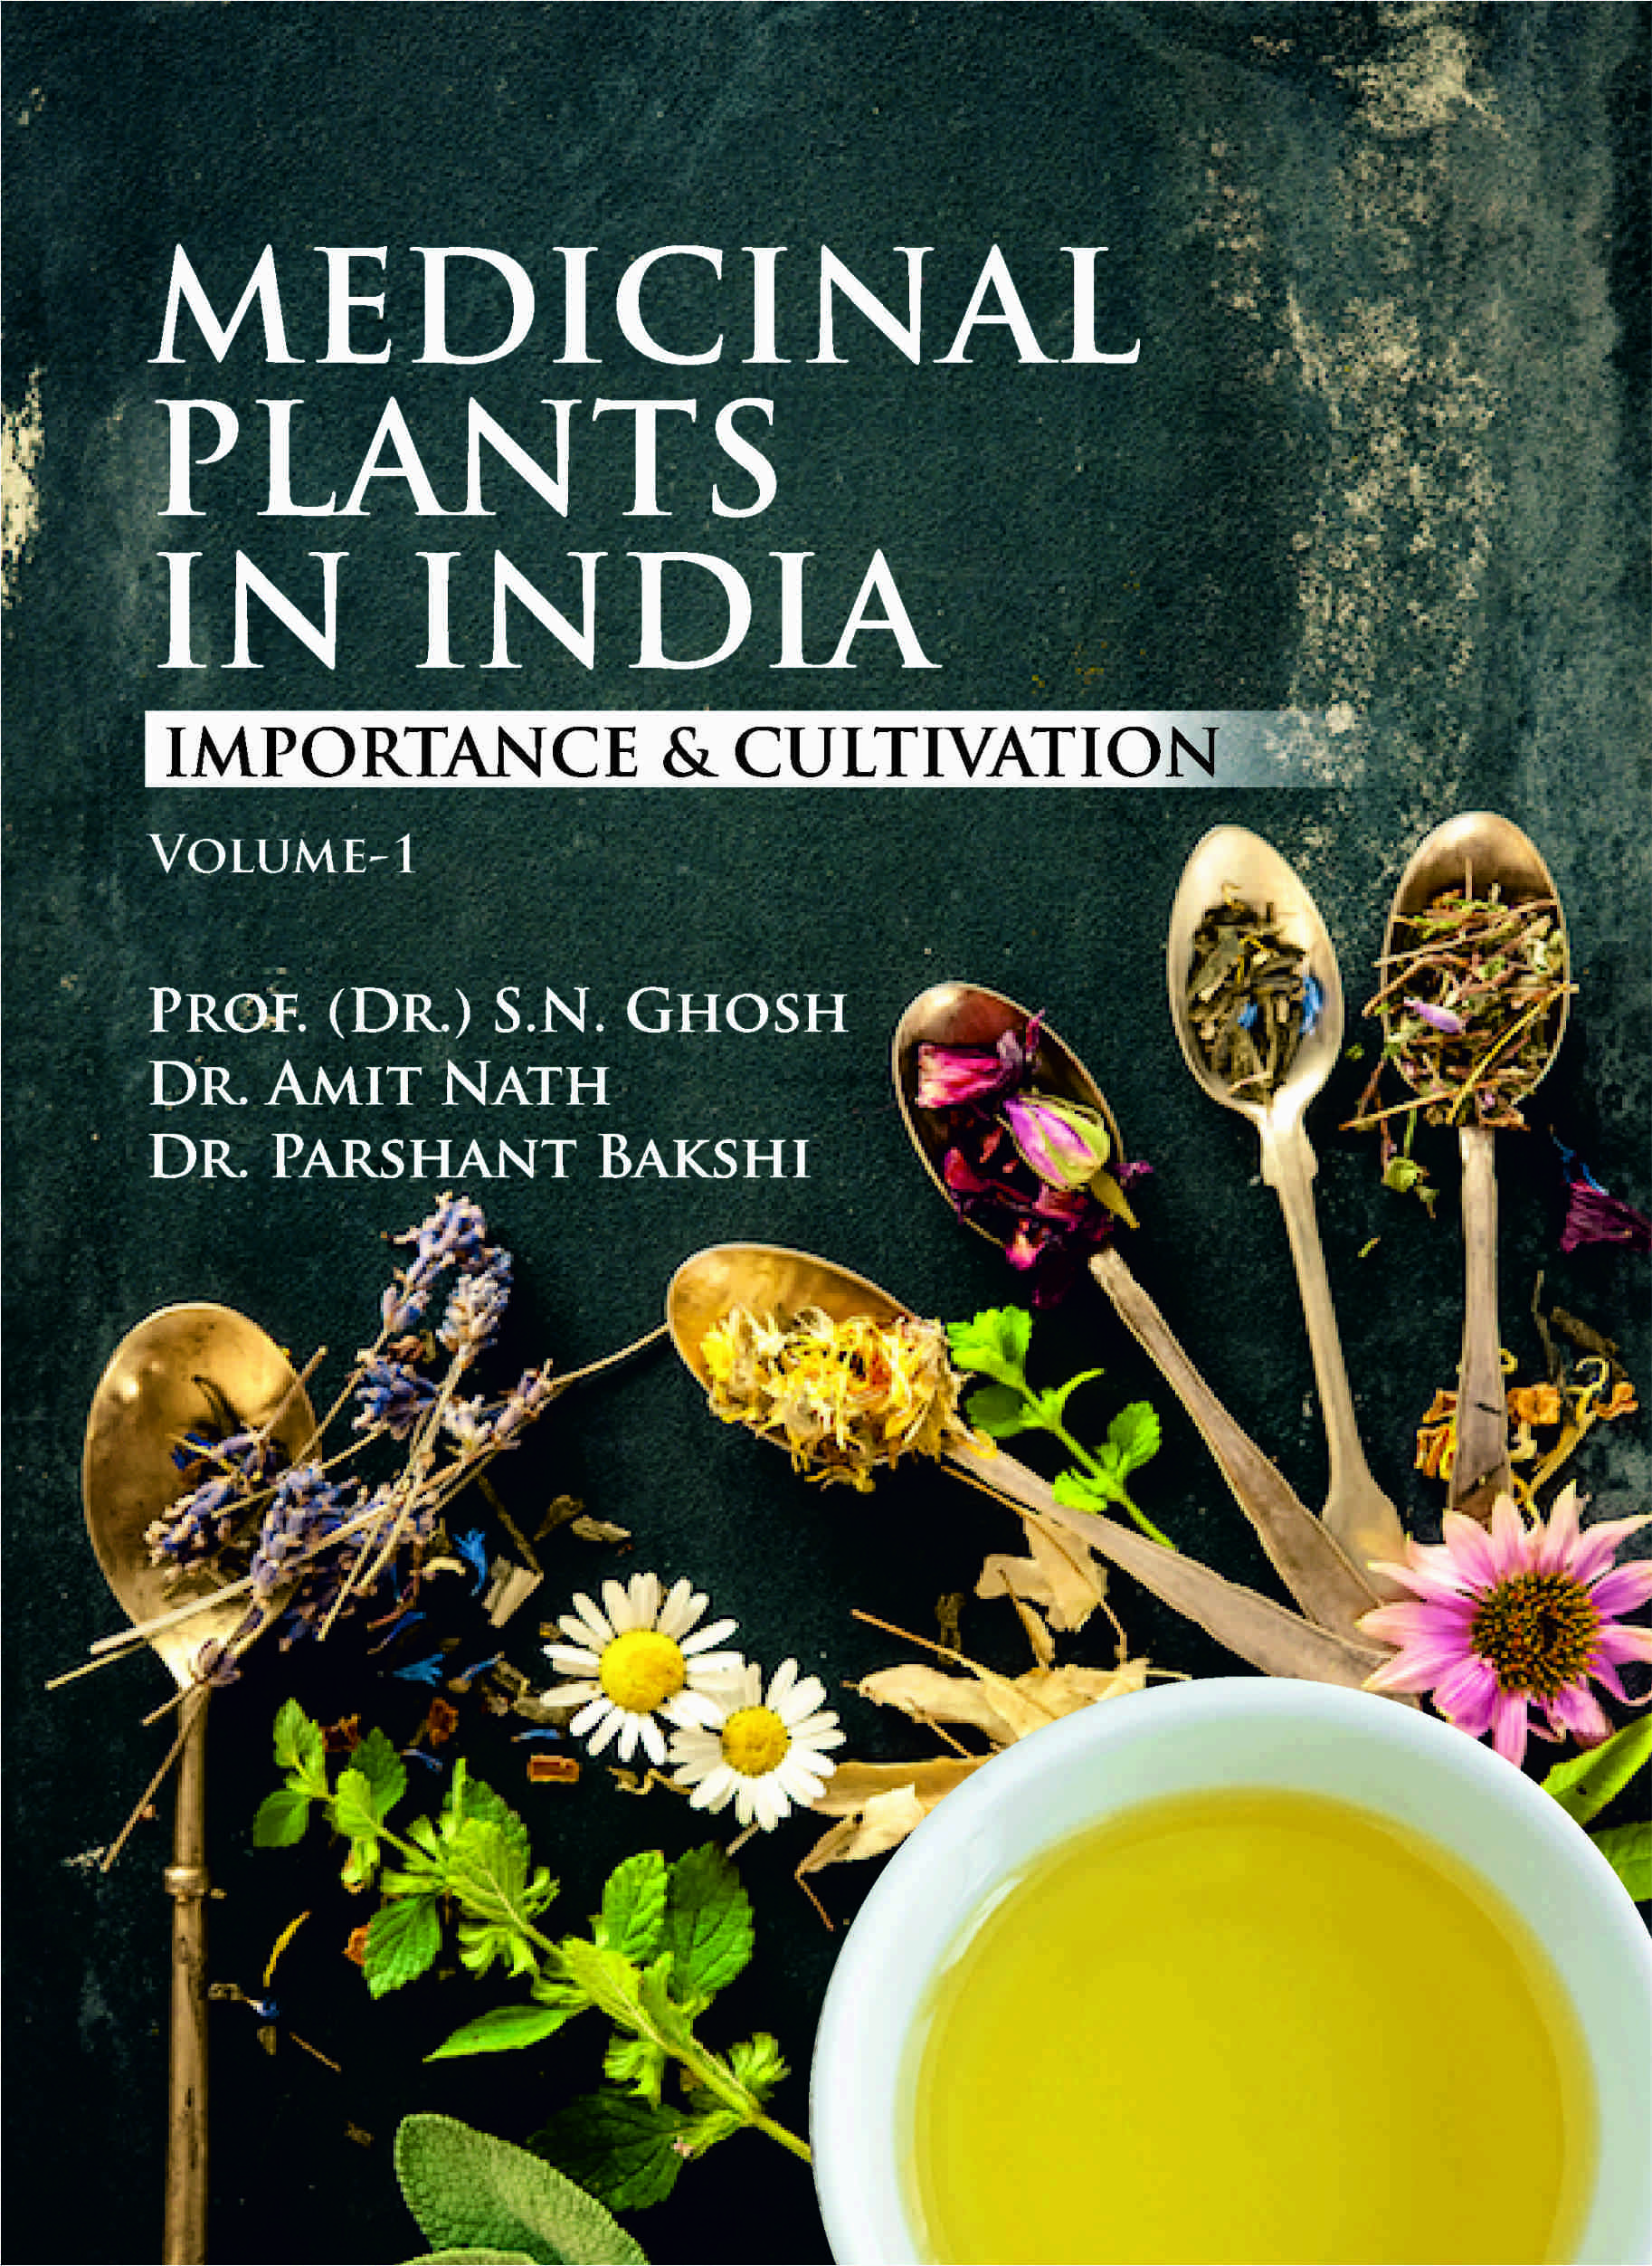 Medicinal Plant in India : Importance & Cultivation Vol. 1